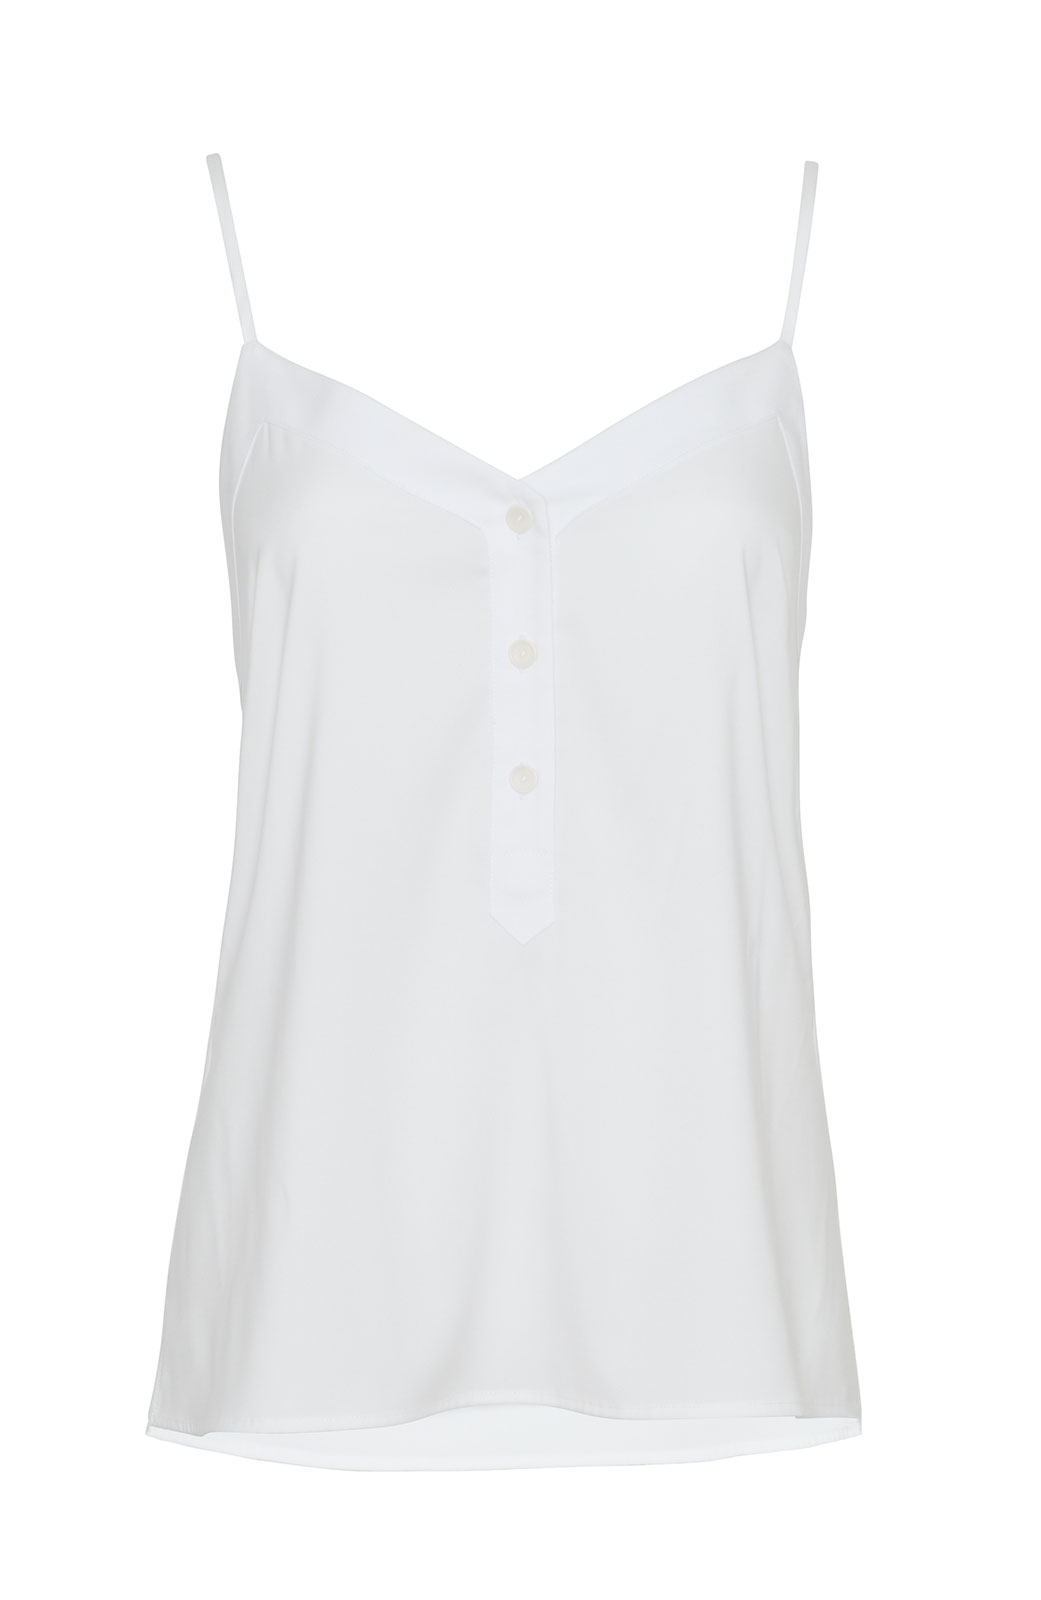 <ul><li>Sleeveless fluid crepe blouse with button front detail</li><li>Polyester/elastane</li><li>Dry clean Only</li></ul>